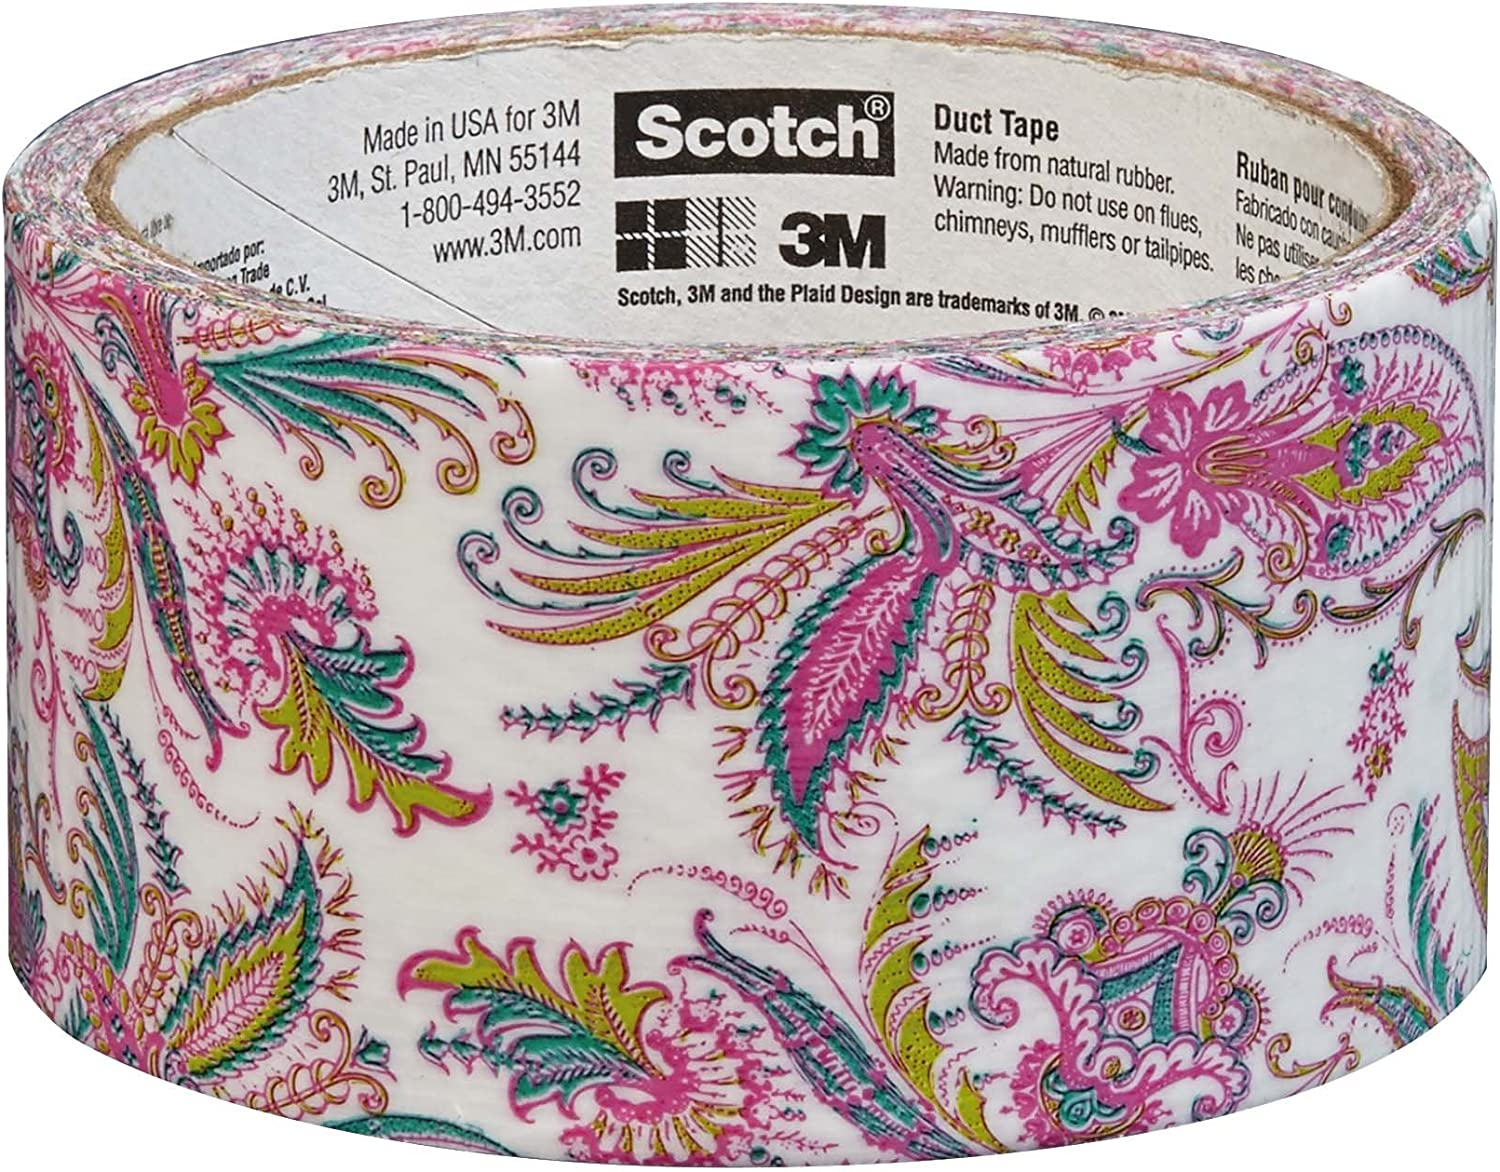 4 Rolls Multi-Color Paisley Duck Brand Duct Tape Lot 1.88in x 10YD FAST SHIPPING